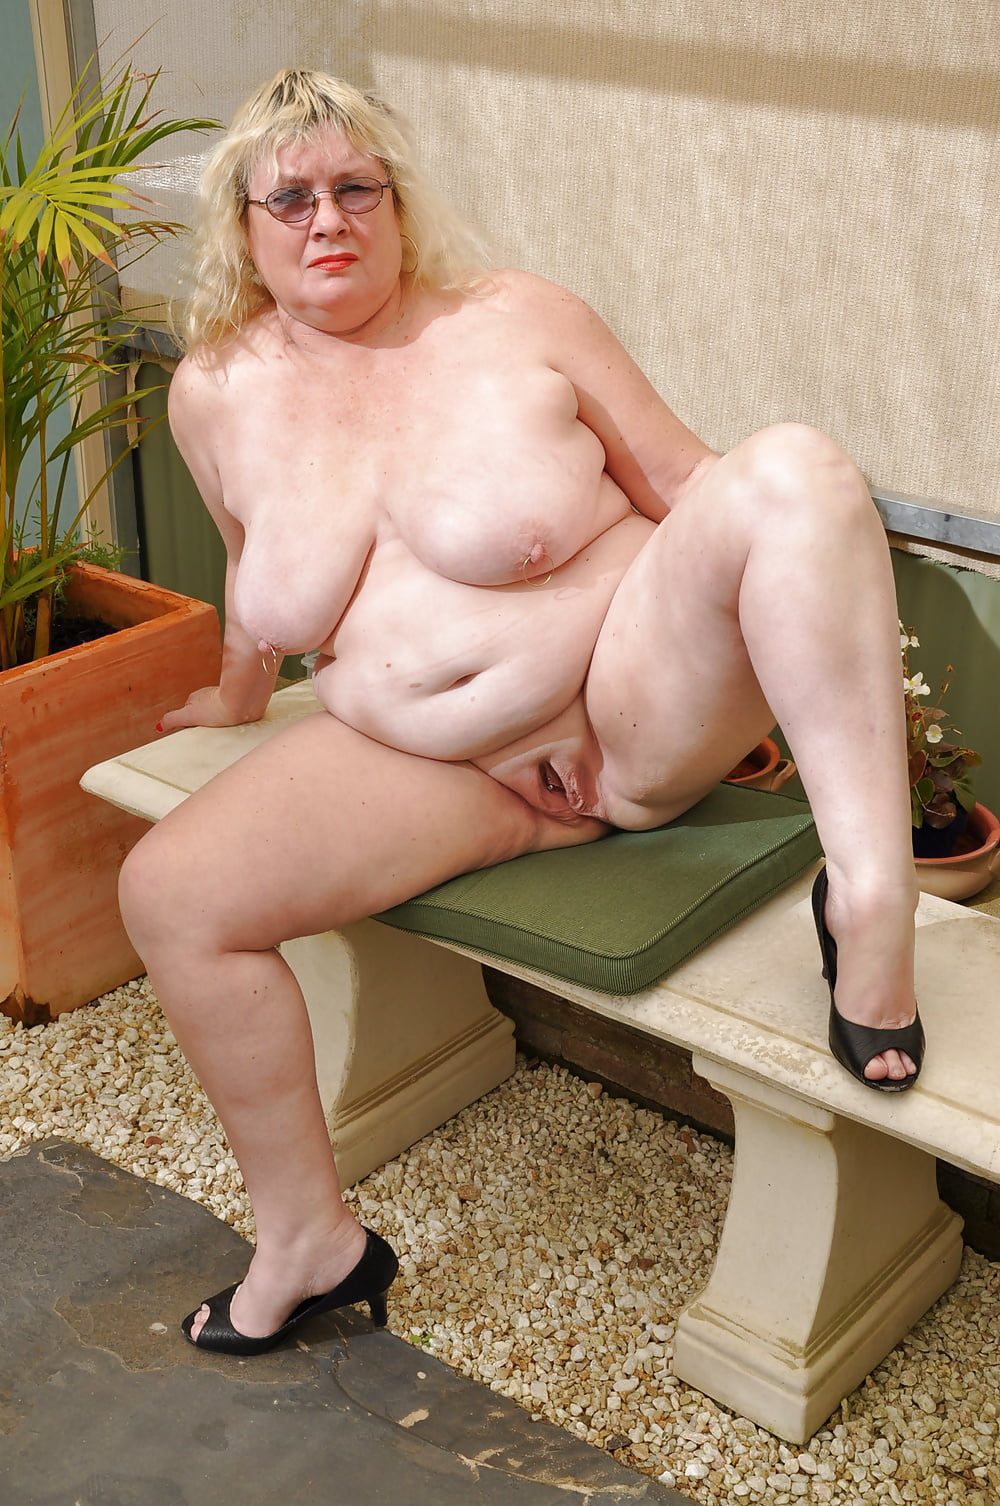 mature-fat-lady-naked-young-nude-model-urinatinh